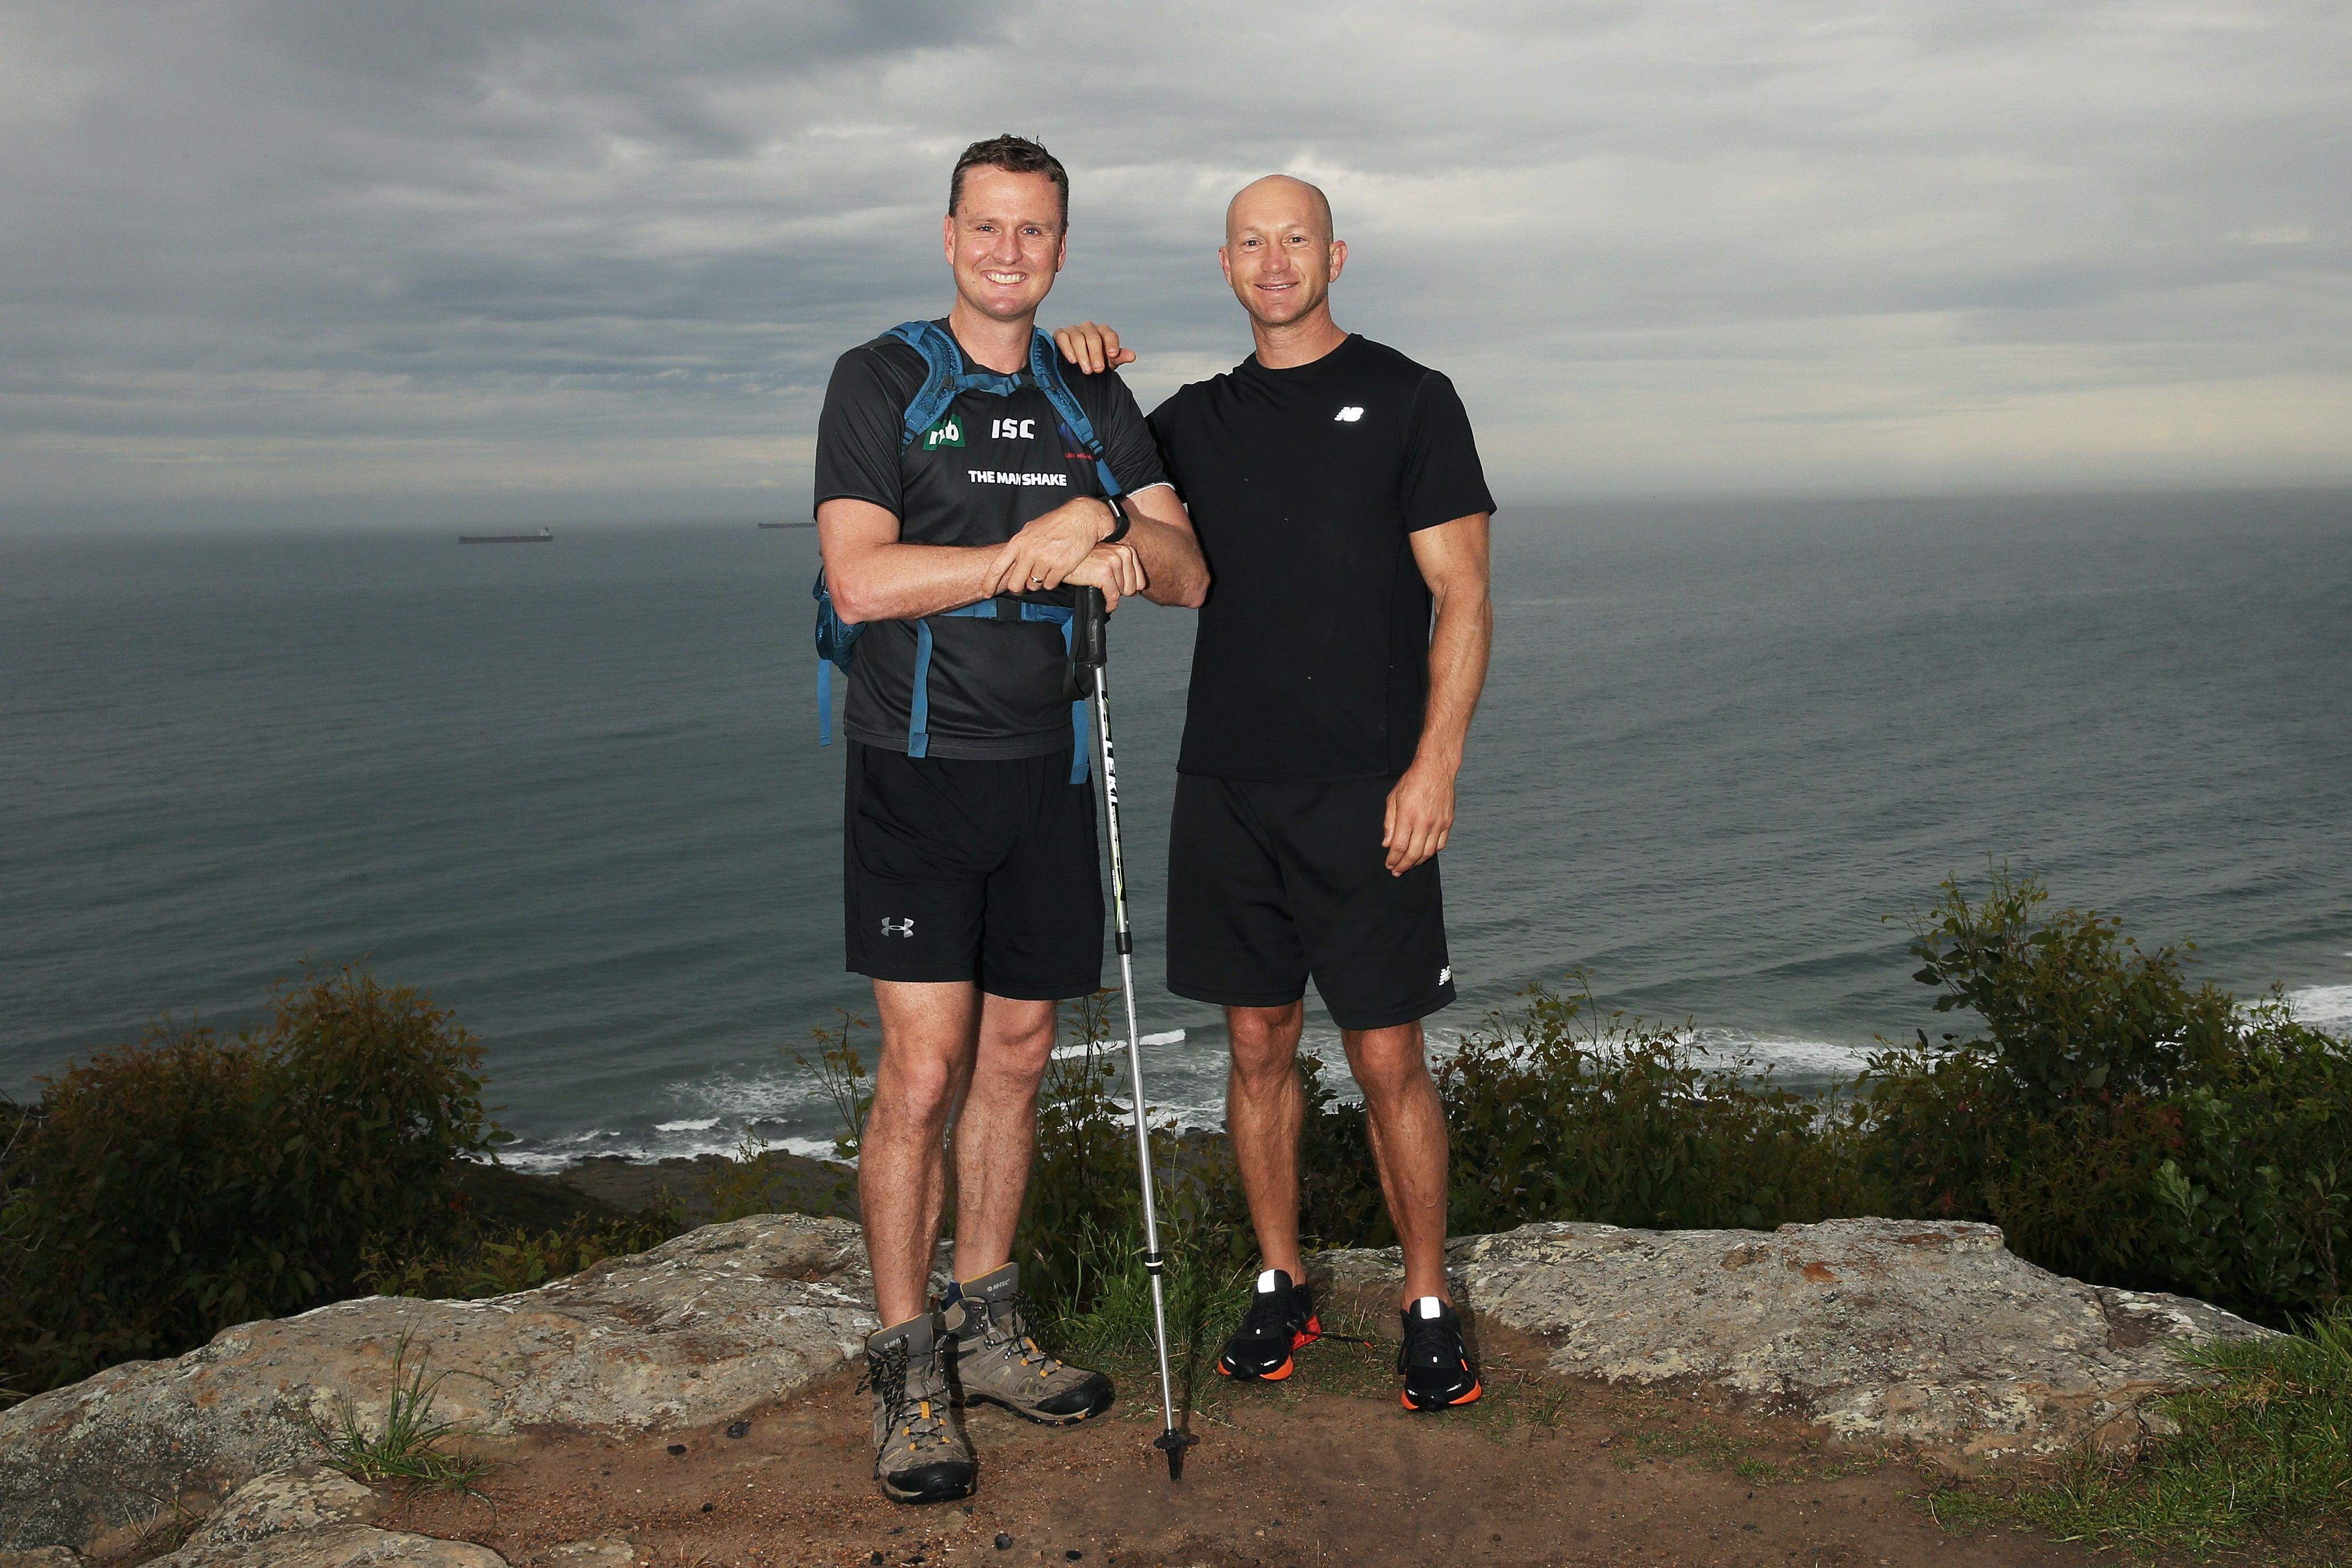 Mark Hughes discussing his training program with former Knight's team mate and MadFit's Adam McDougall before his trek to raise money for brain cancer in Borneo. Picture by Peter Lorimer.